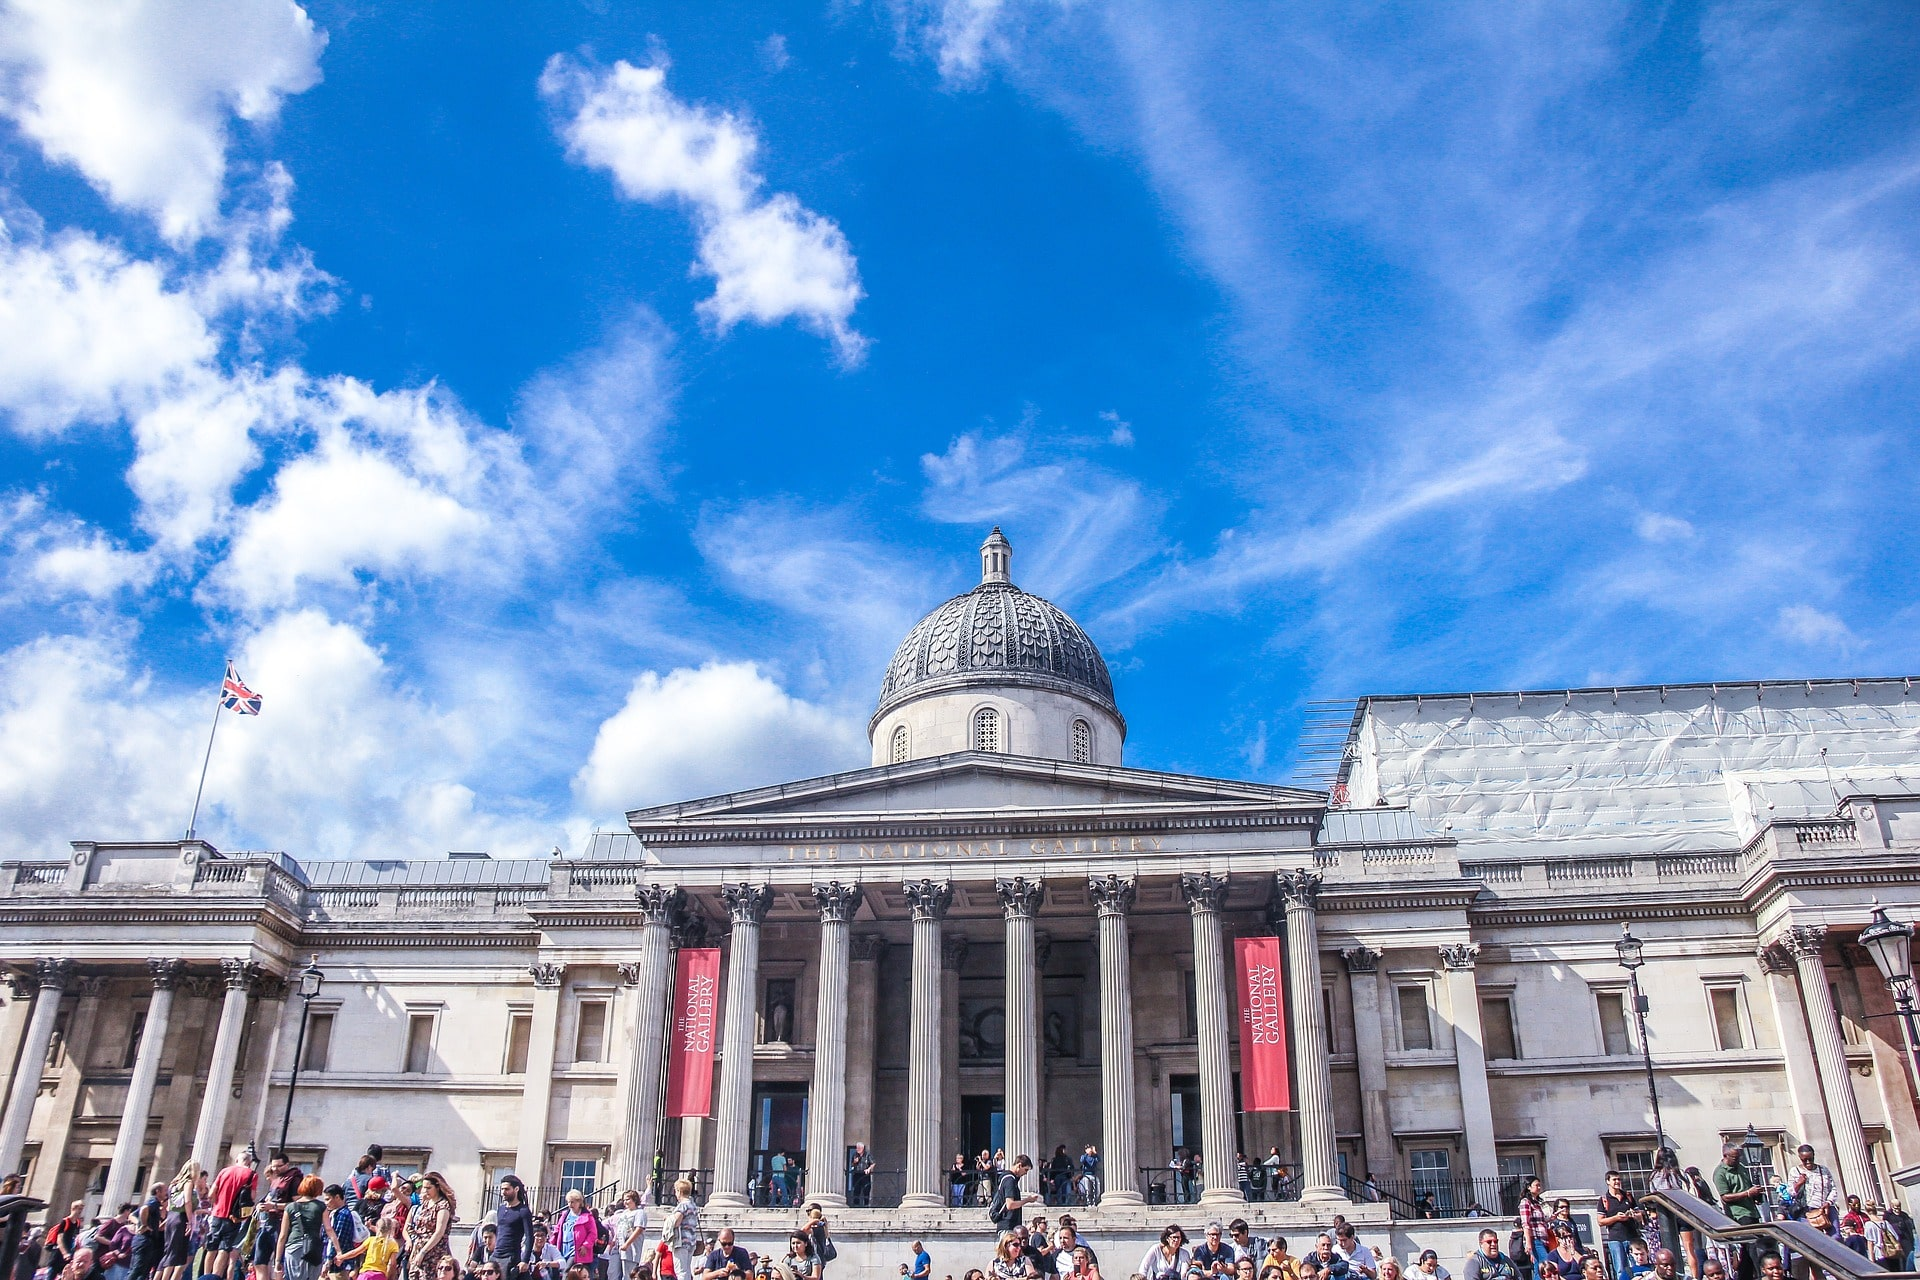 London Travel FAQ: What museums are worth seeing?